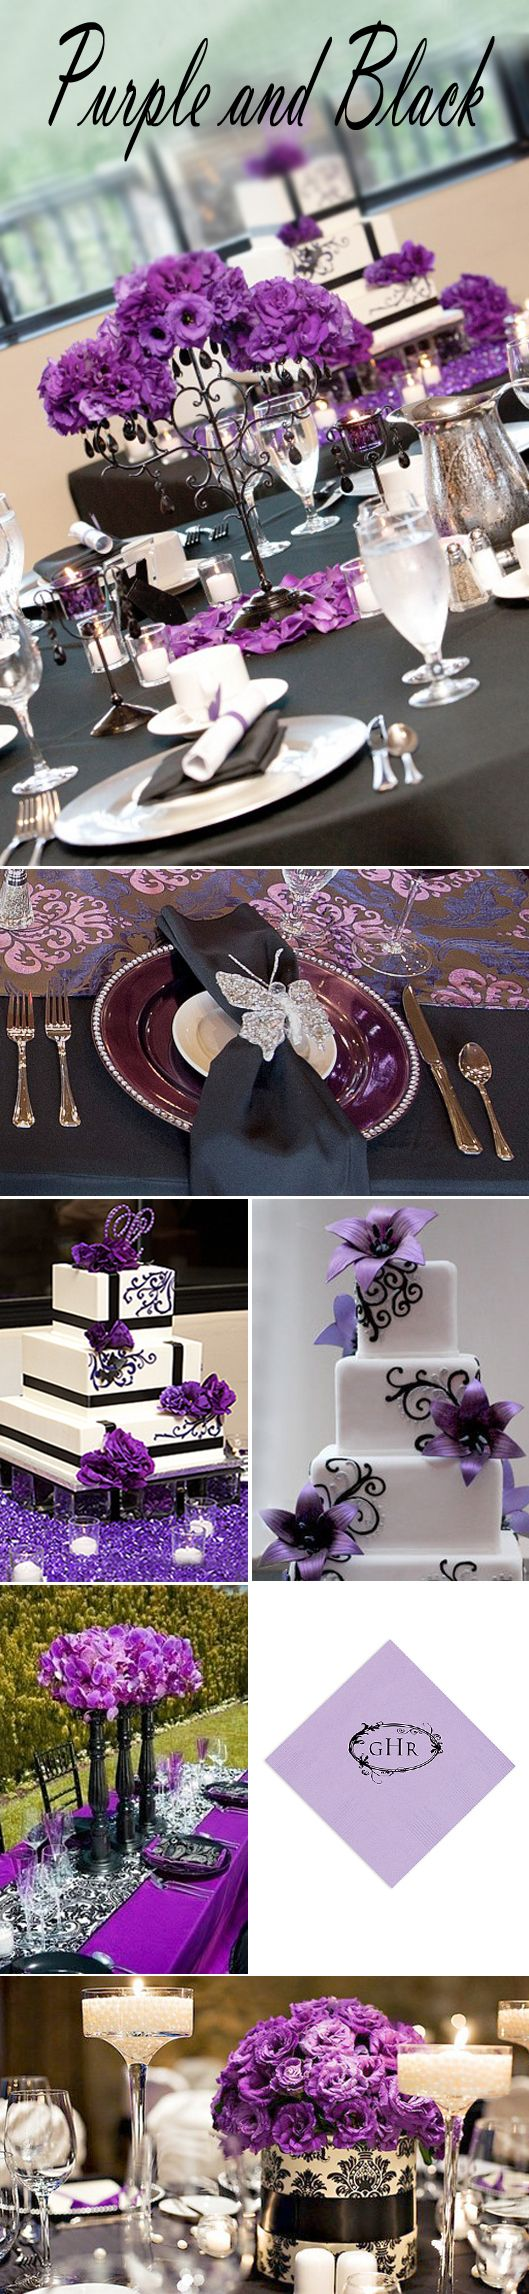 Purple and Black Wedding Theme Collage~